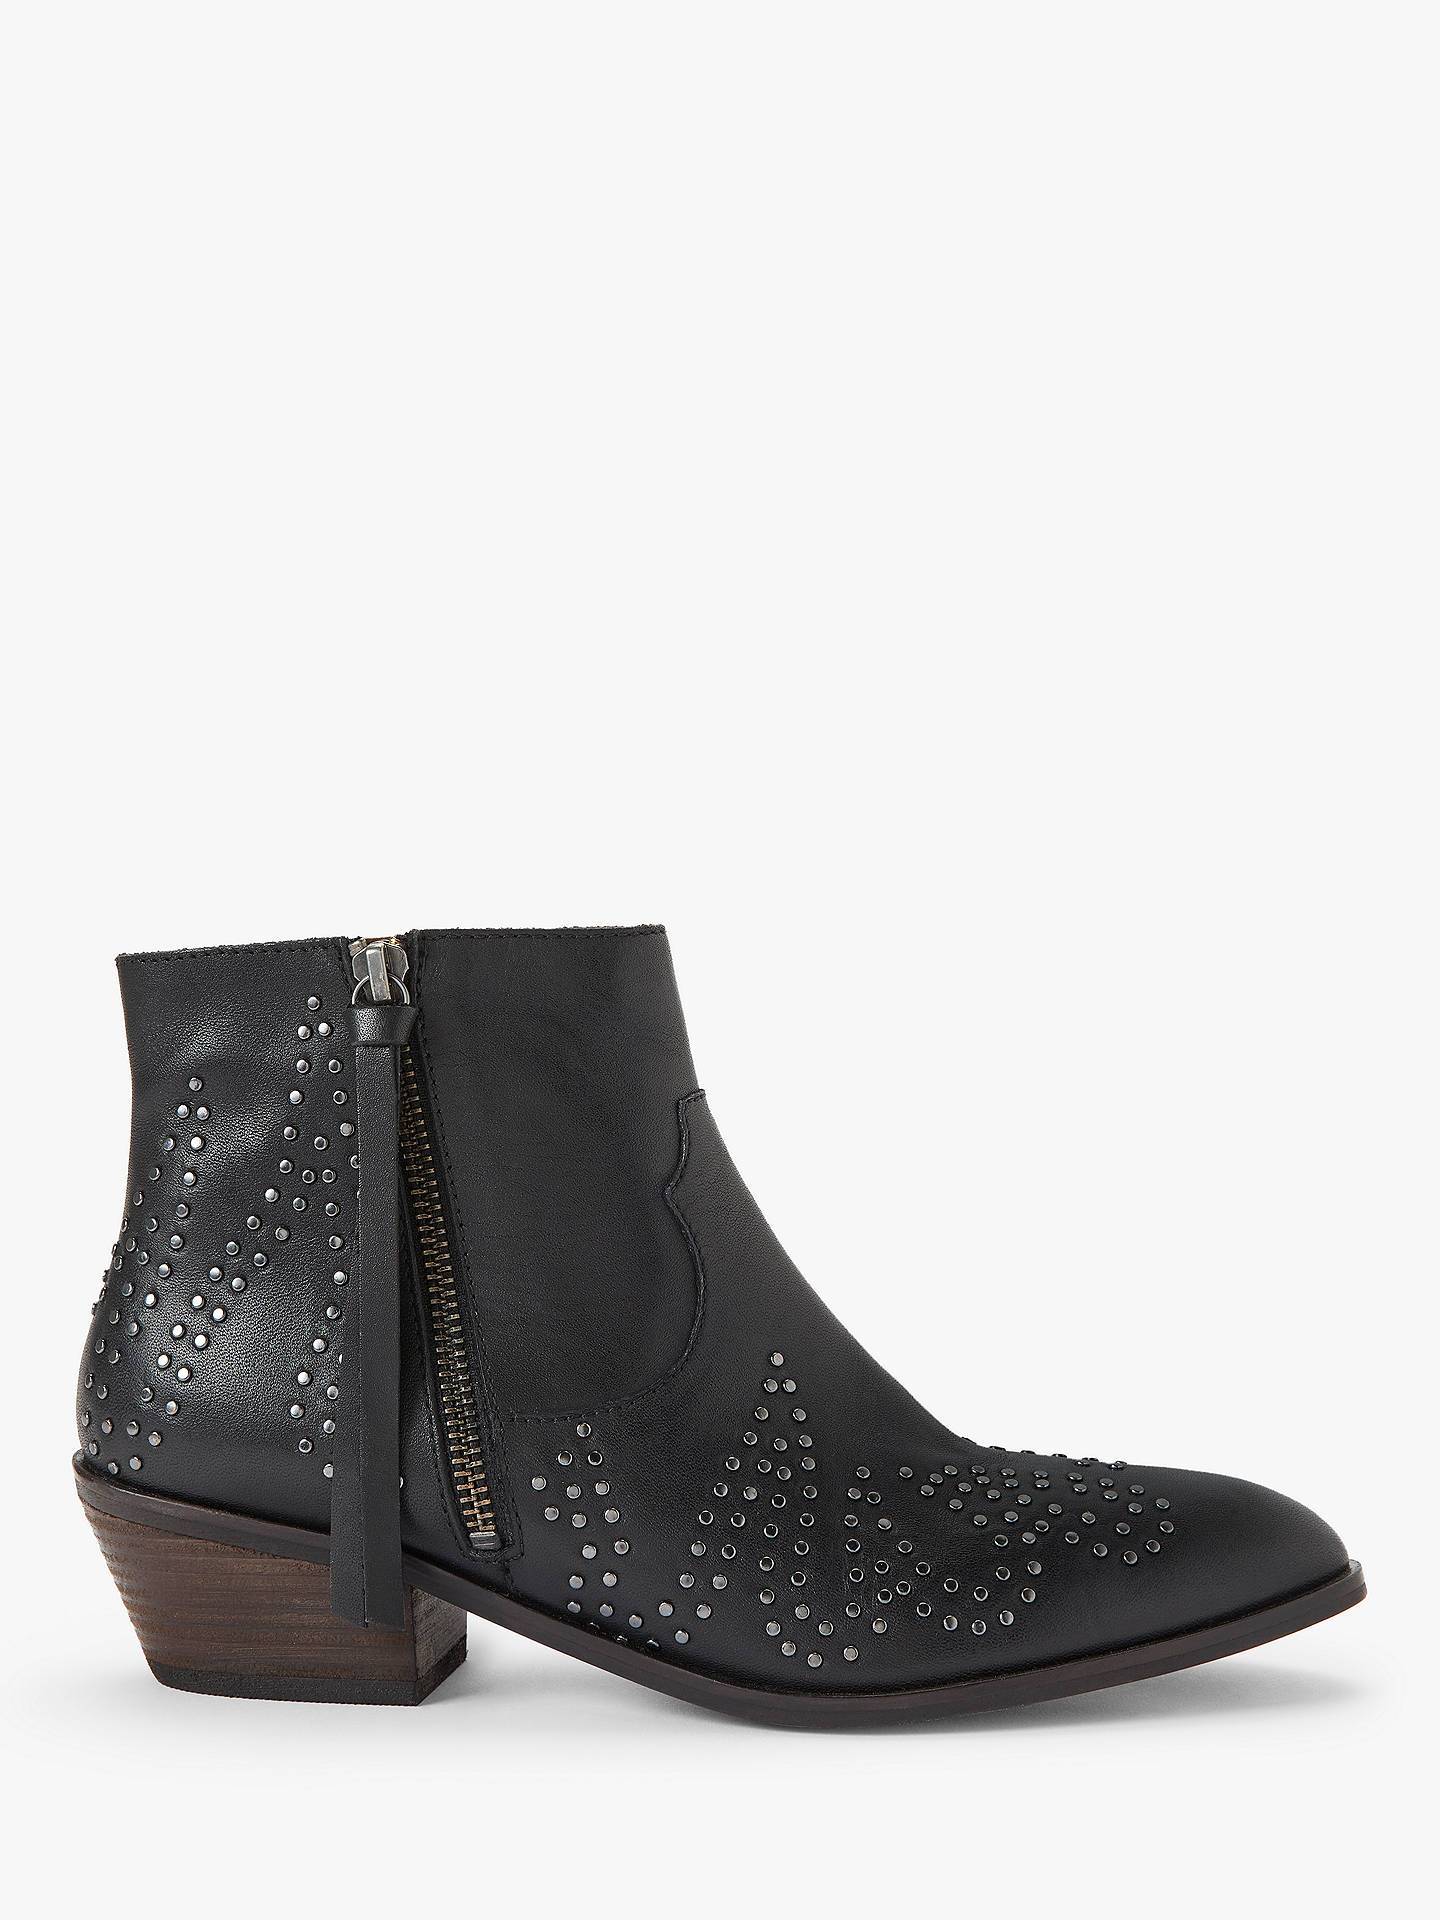 5f5fffc3083 AND/OR Paloma Studded Leather Ankle Boots, Black